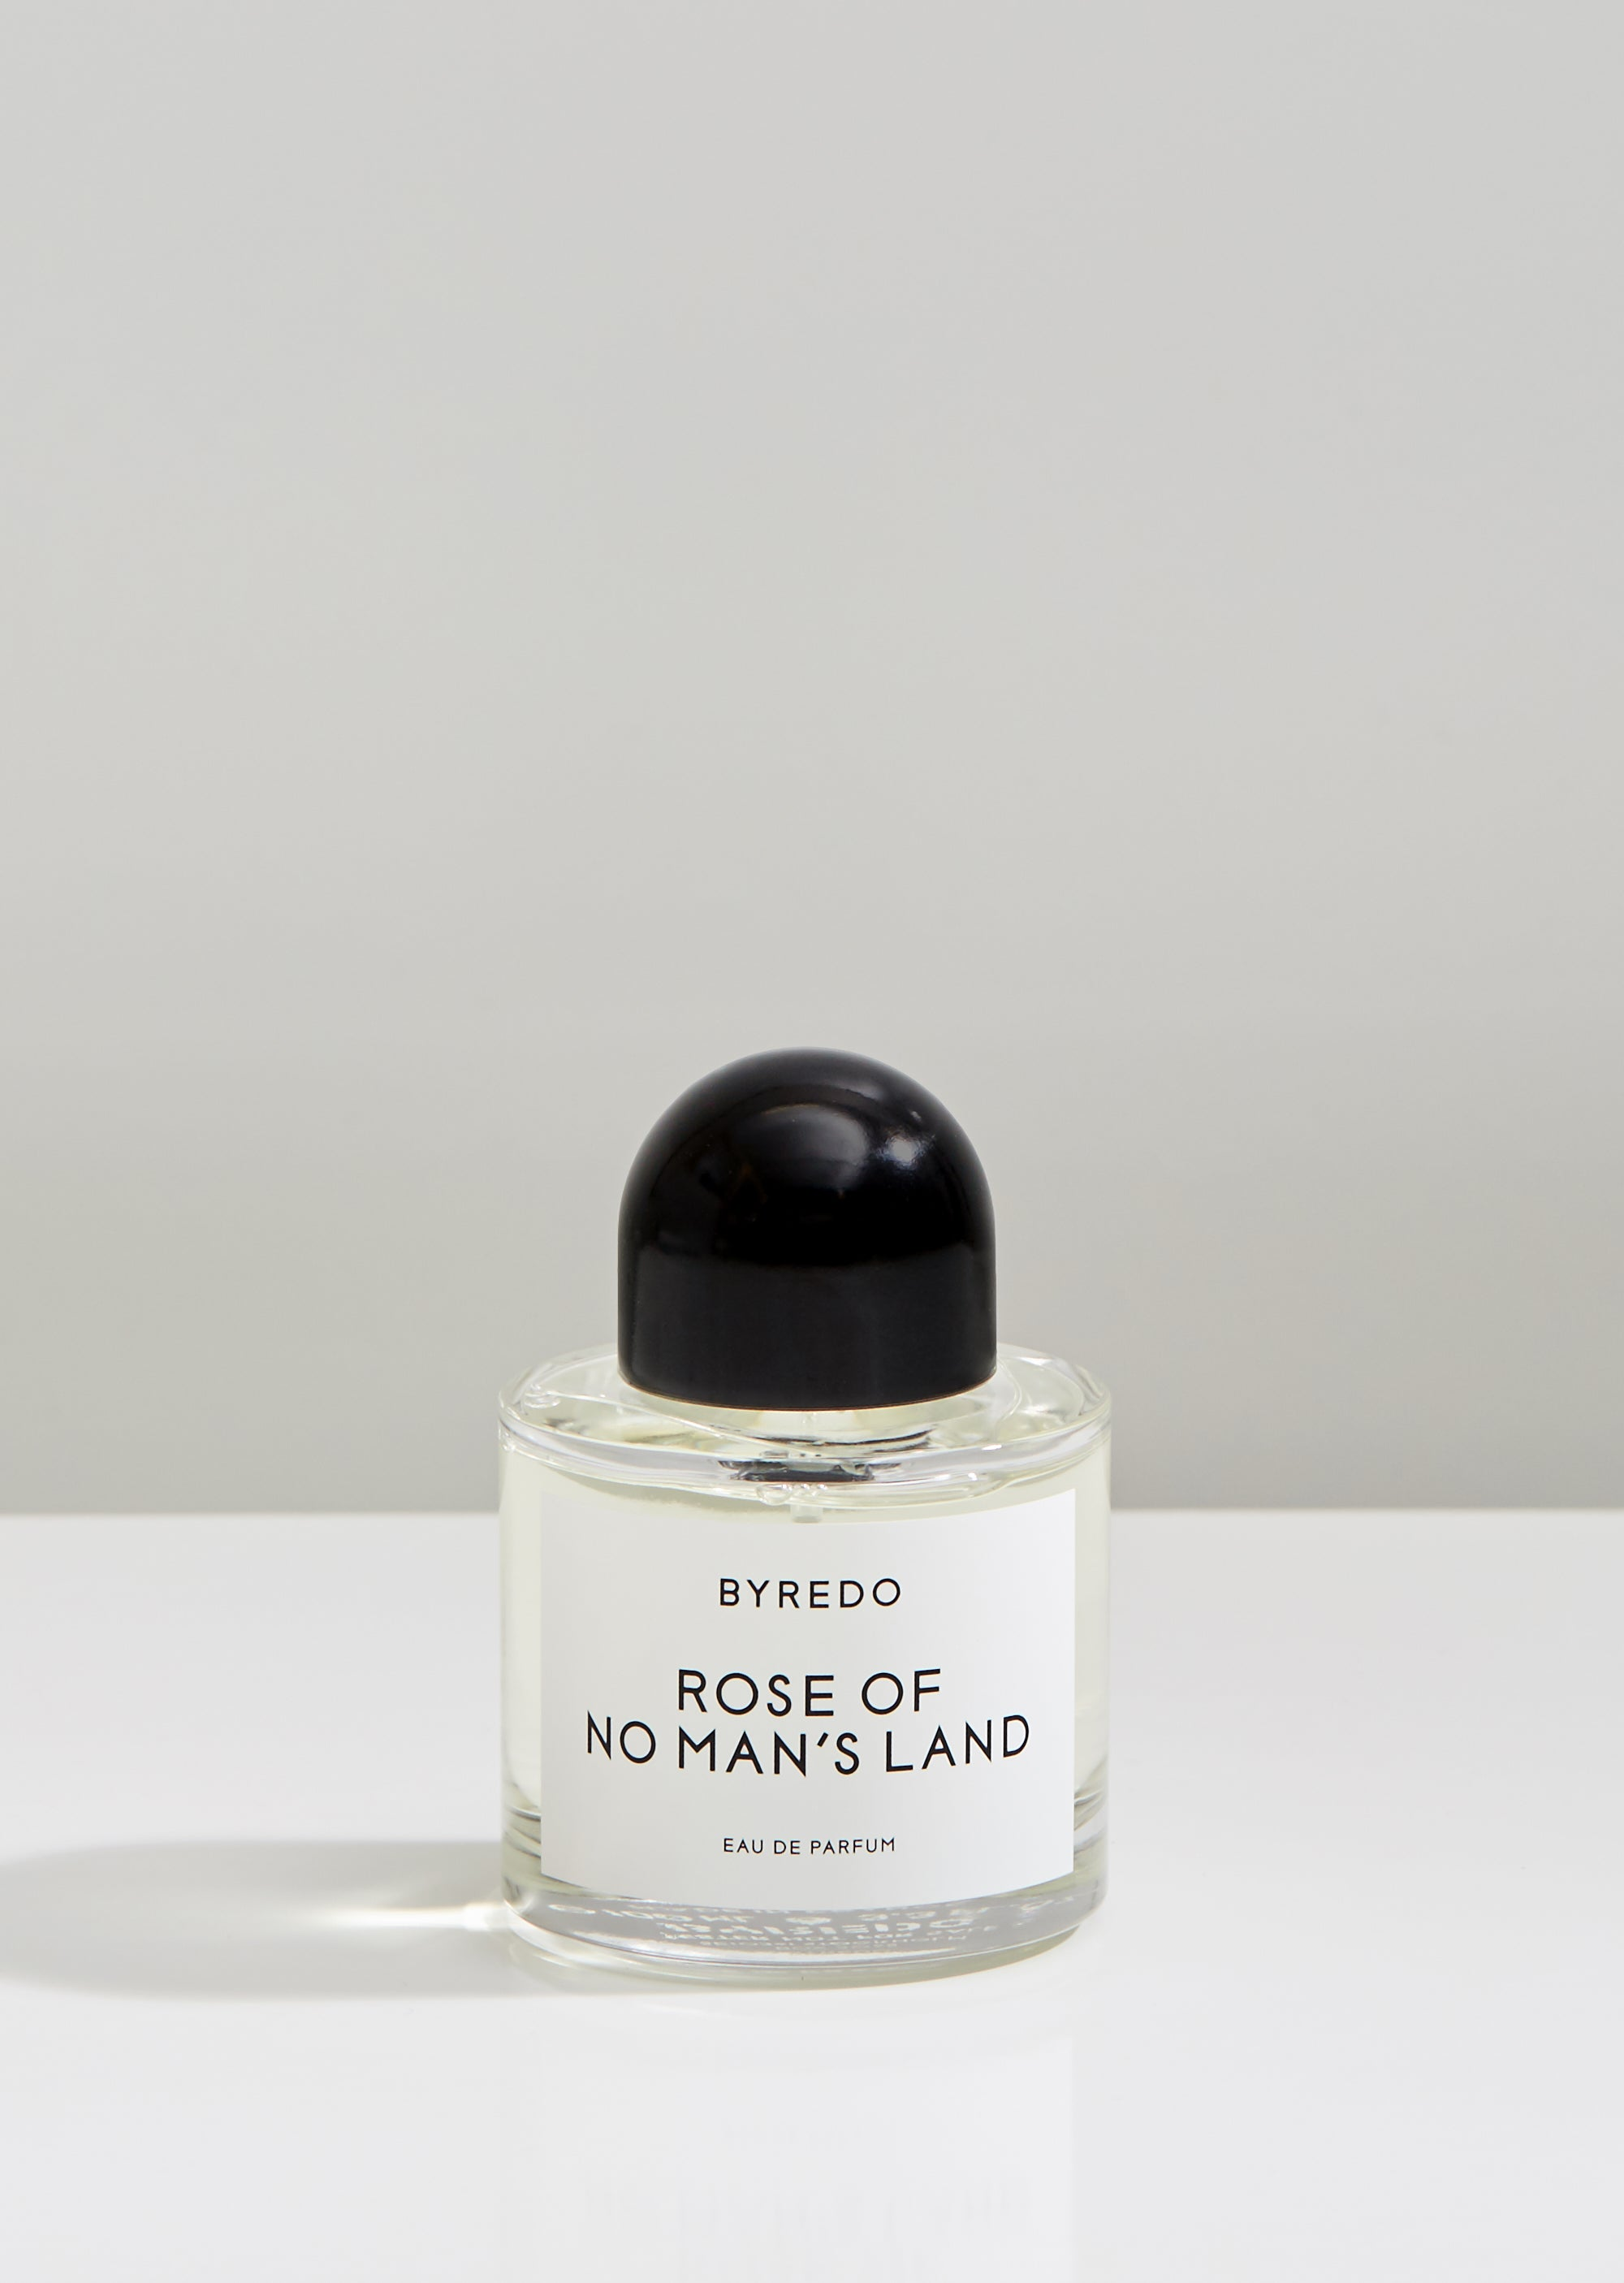 Rose of No Man's Land Eau de Parfum